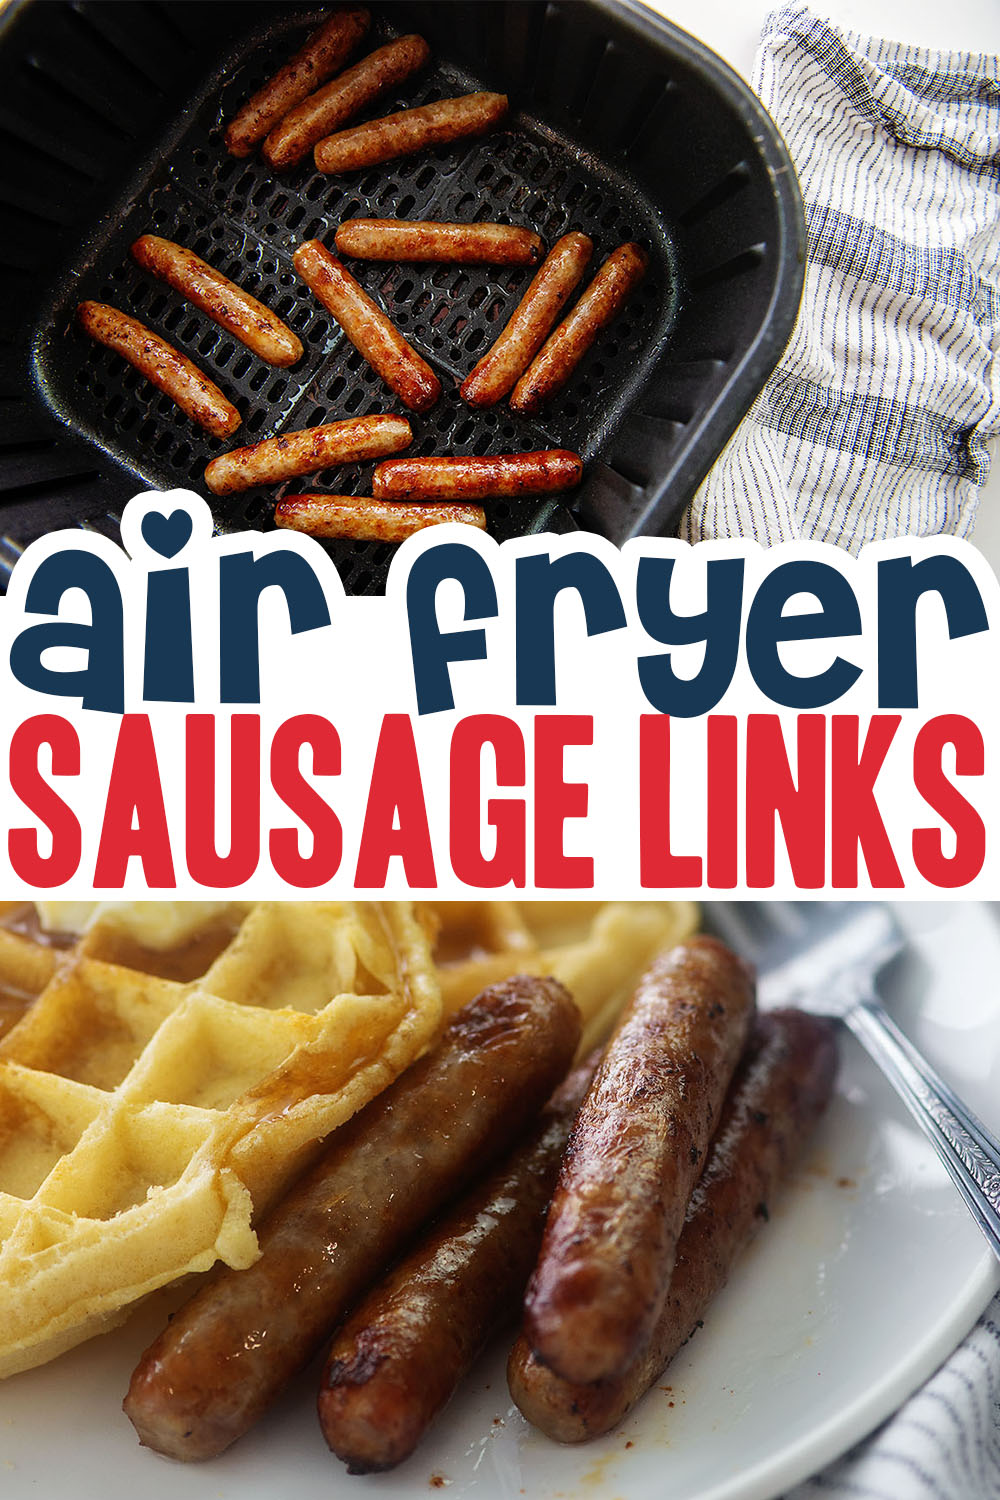 Try air frying sausage links next time you want an easy breakfast sausage without sacrificing taste and texture.